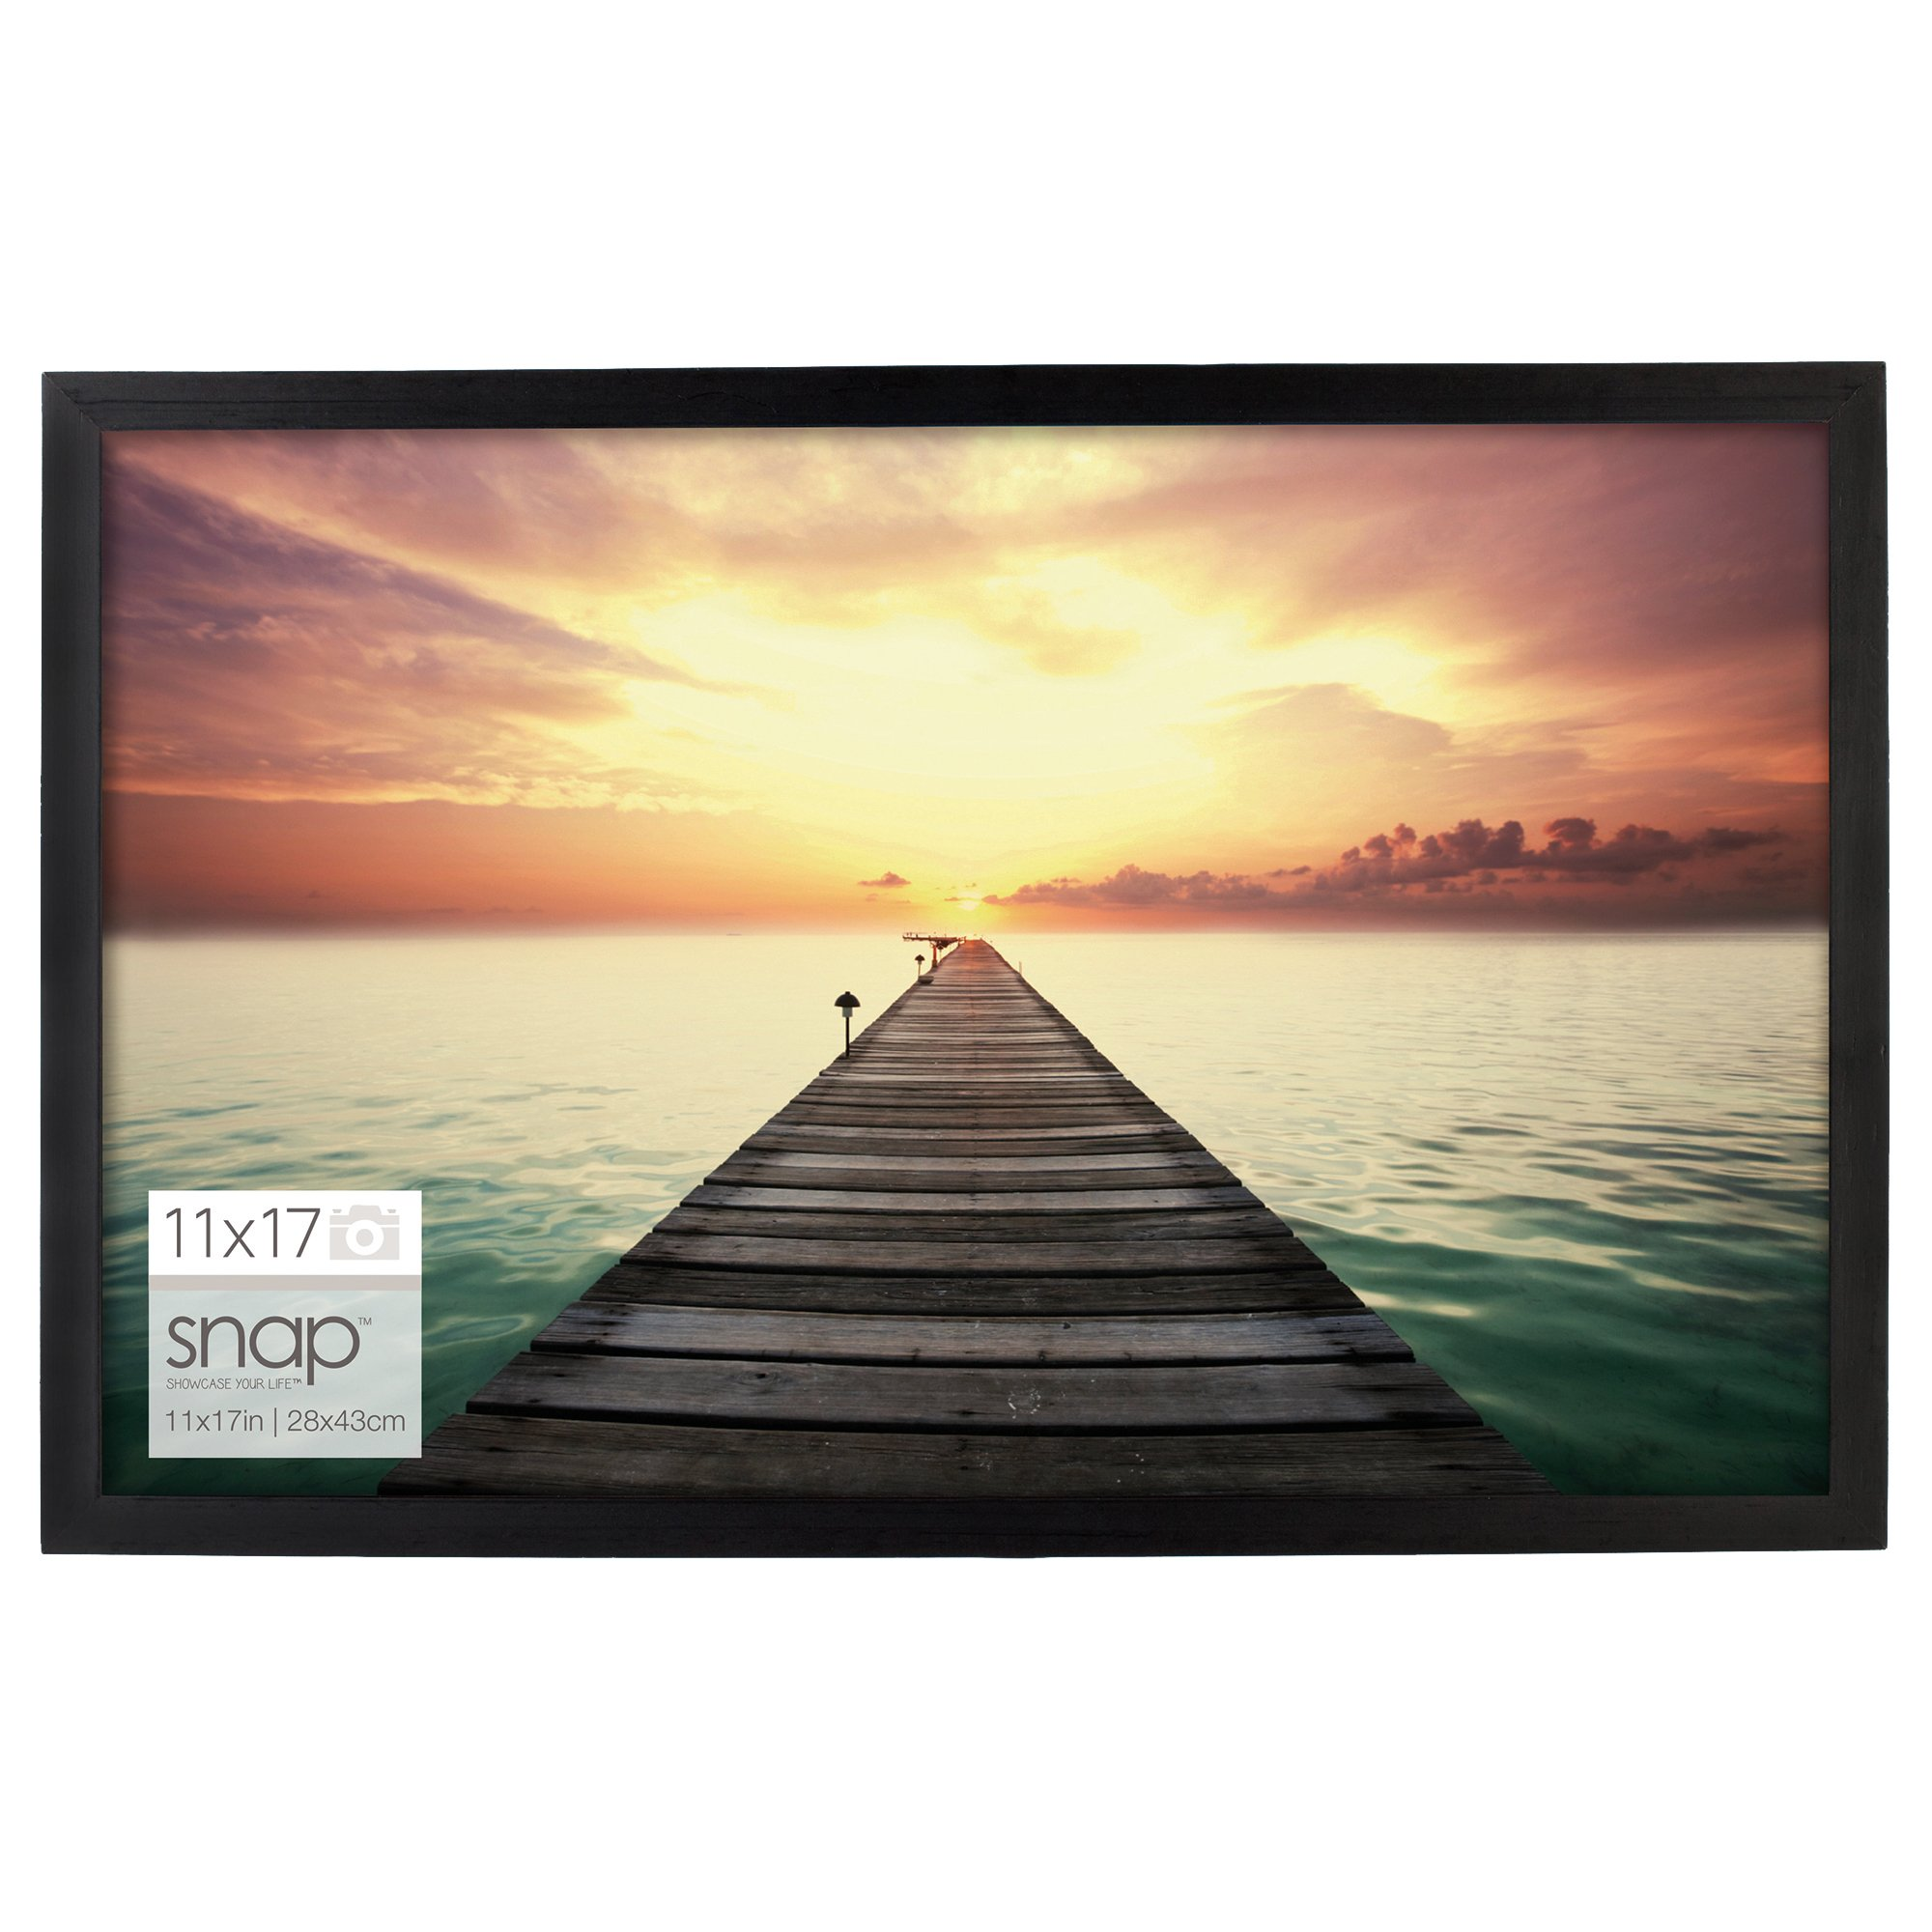 Snap 11 by 17 Inch Black Wood Photo Frame